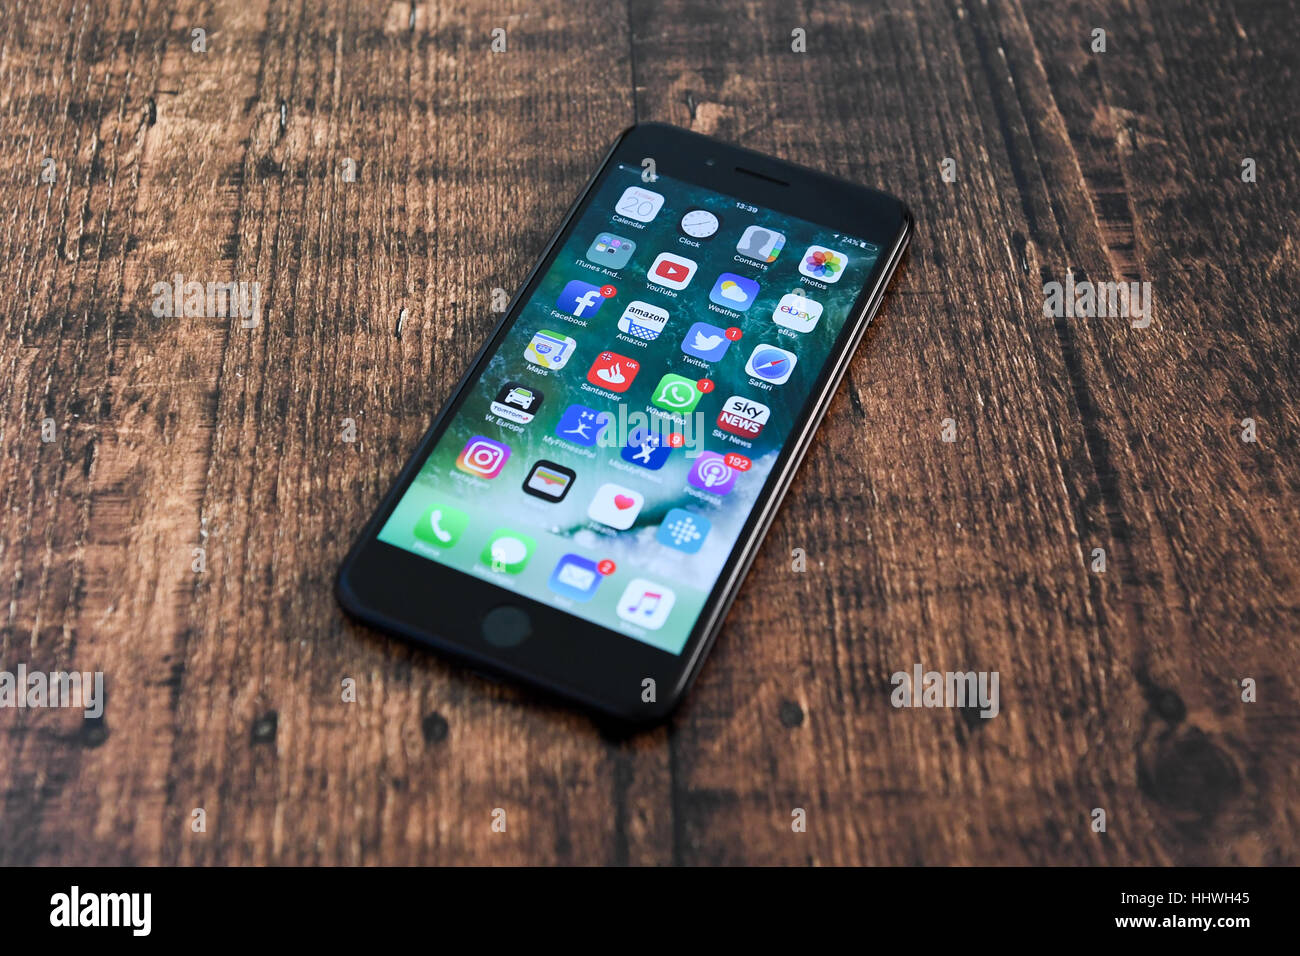 Apple Iphone 7 plus on a wooden surface without hands and people in the shot  IOS 10 - Stock Image